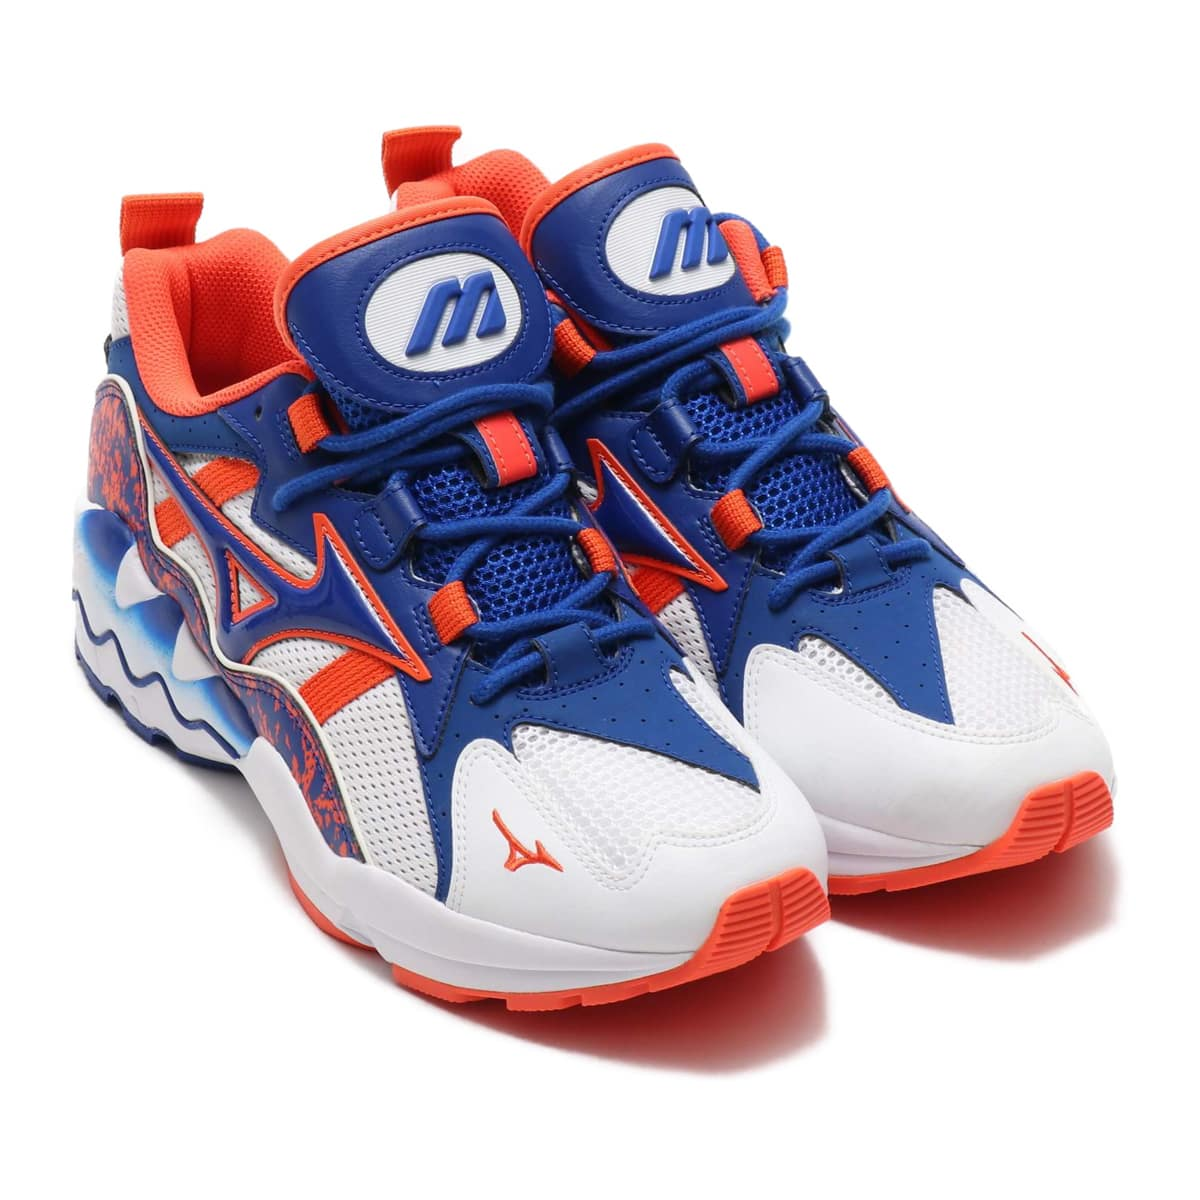 MIZUNO WAVE RIDER1 WHITE/BLUE/ORANGE 19SS-I_photo_large